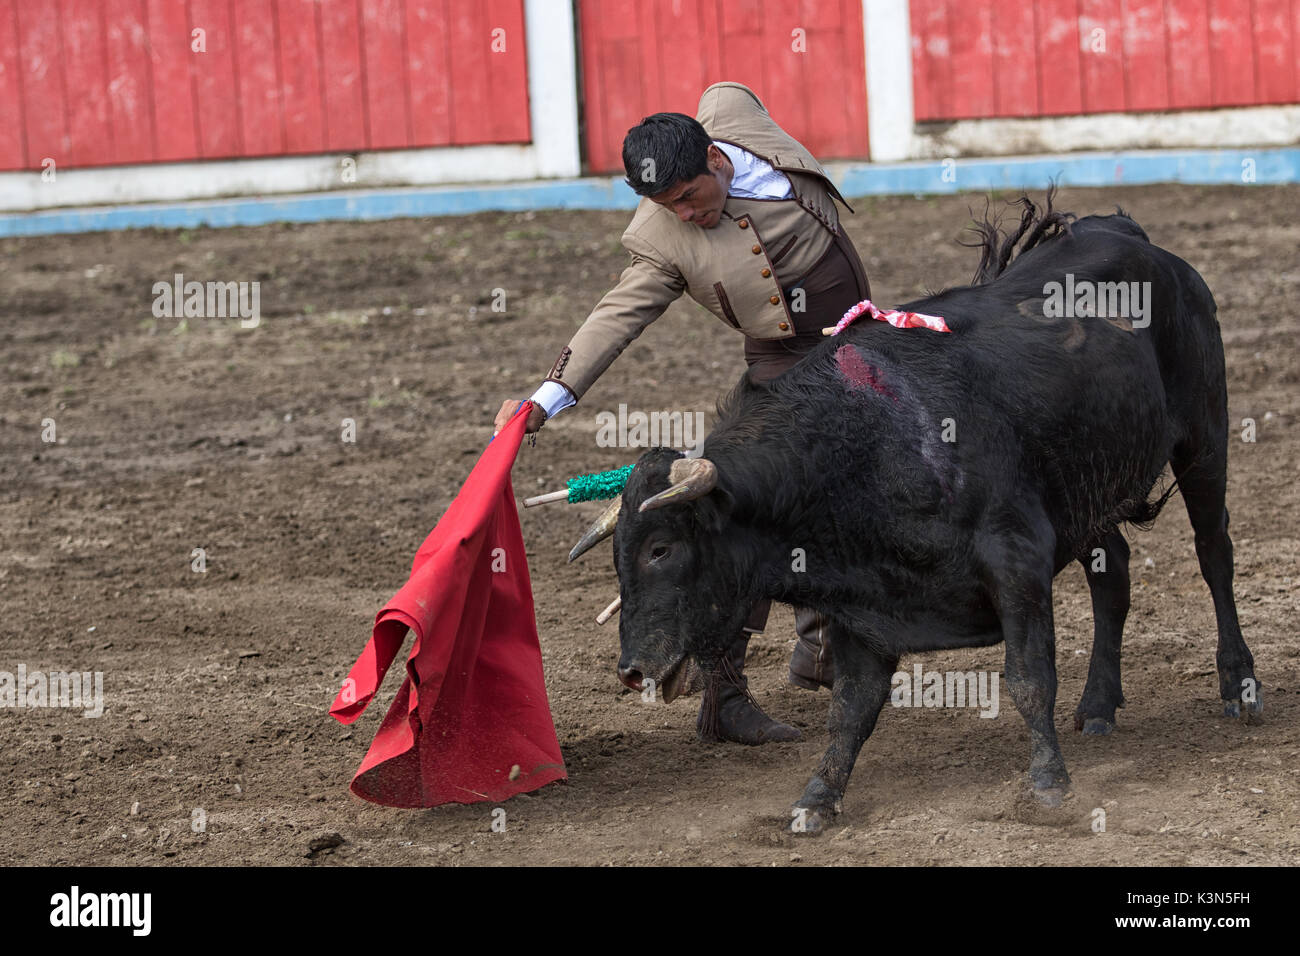 June 18, 2017 Pujili, Ecuador: bullfighter holds up a cape in front of the bull during the ritual - Stock Image